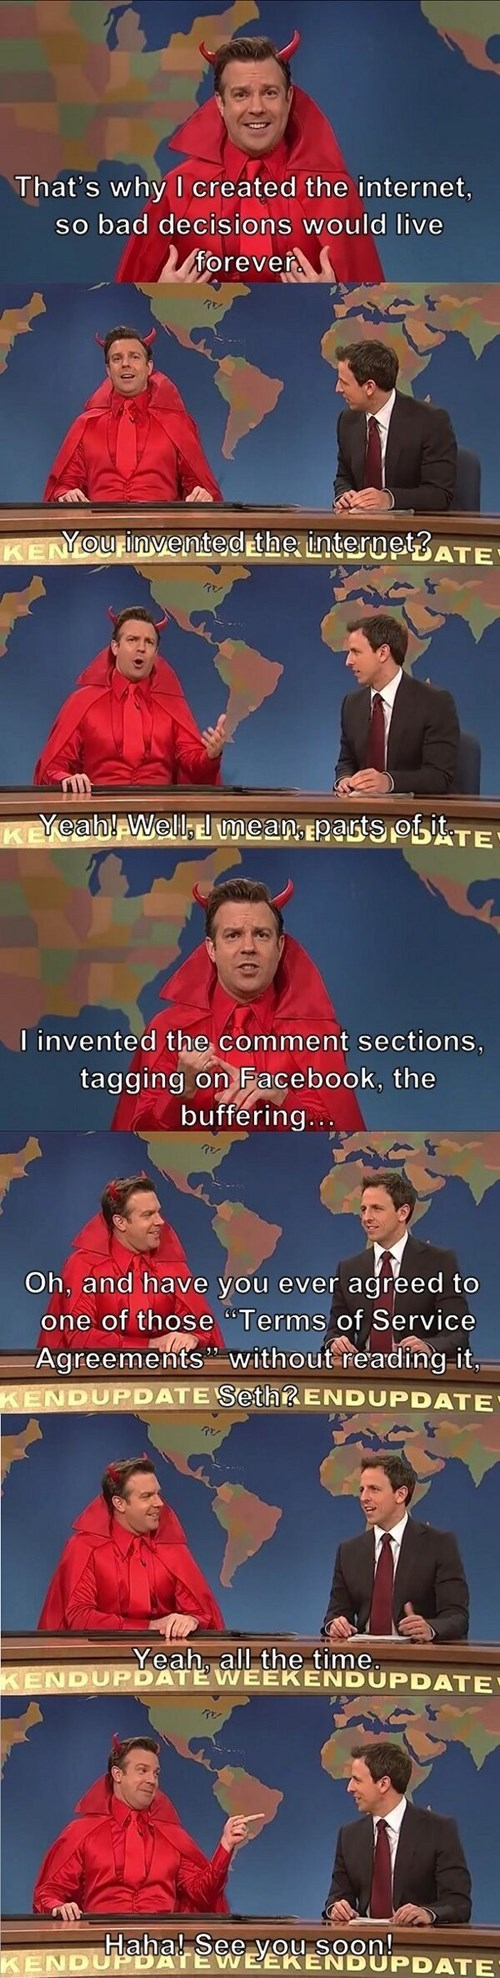 seth meyers the internets the devil SNL - 8042975232